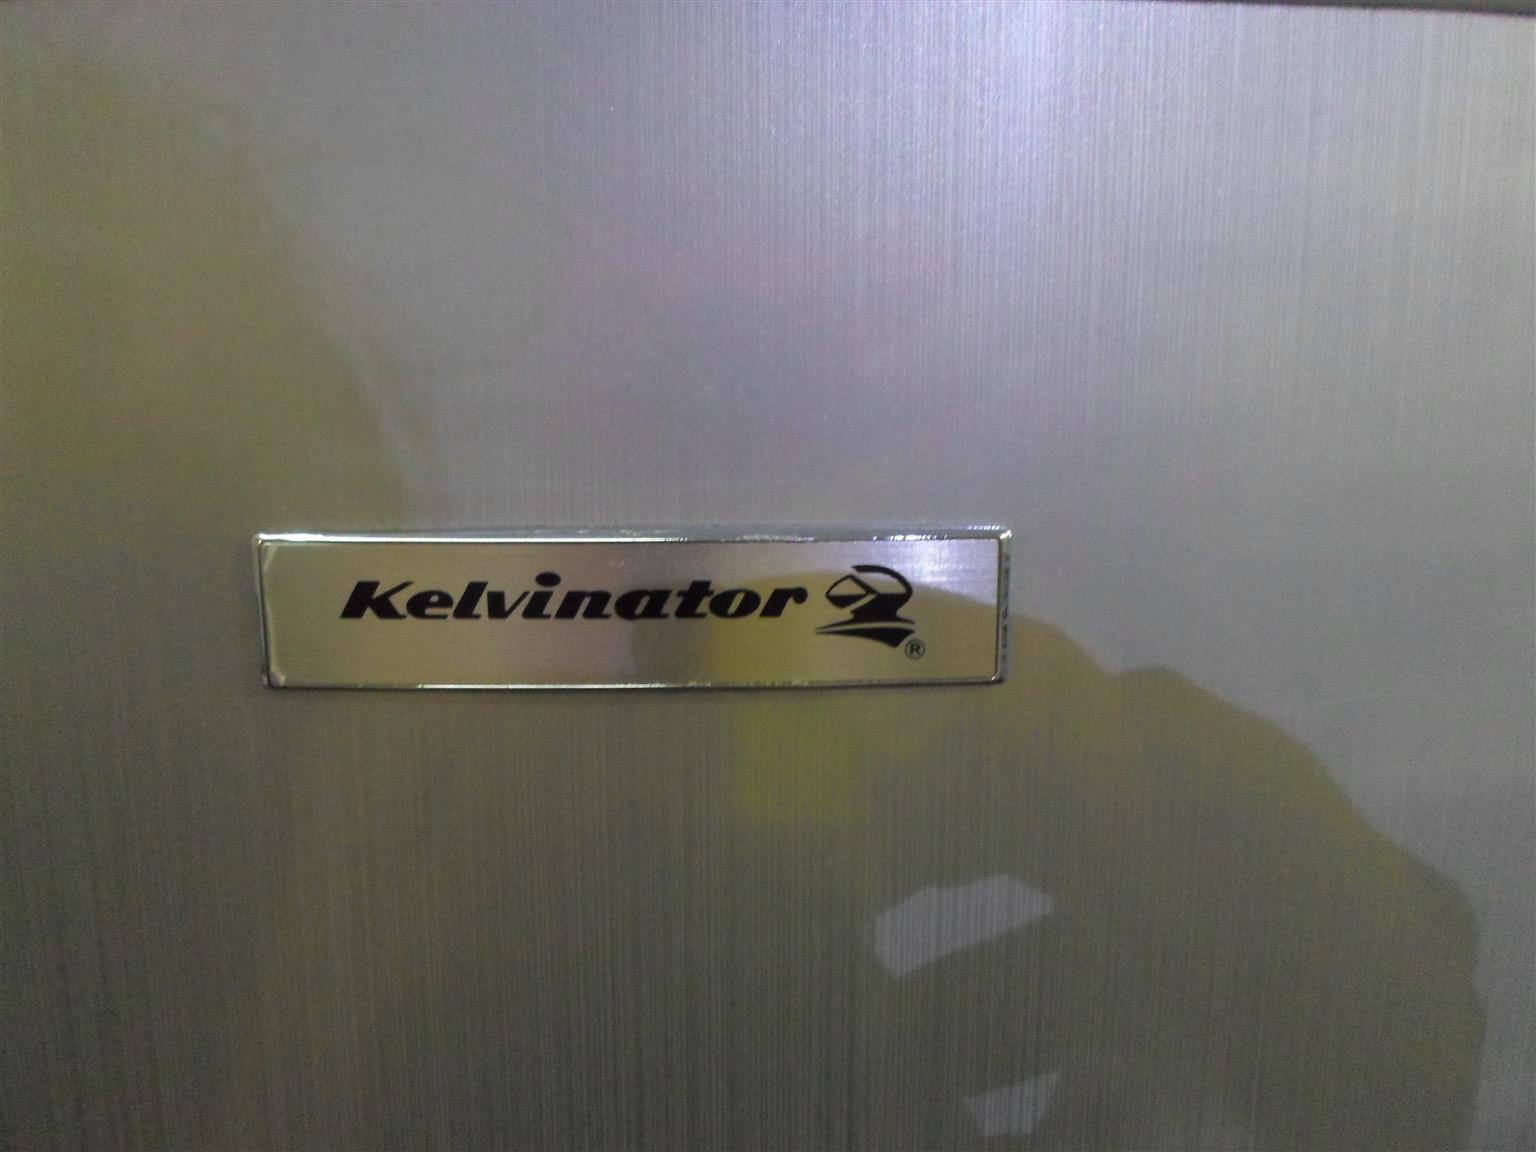 Kelvinator Fridge / Freezer